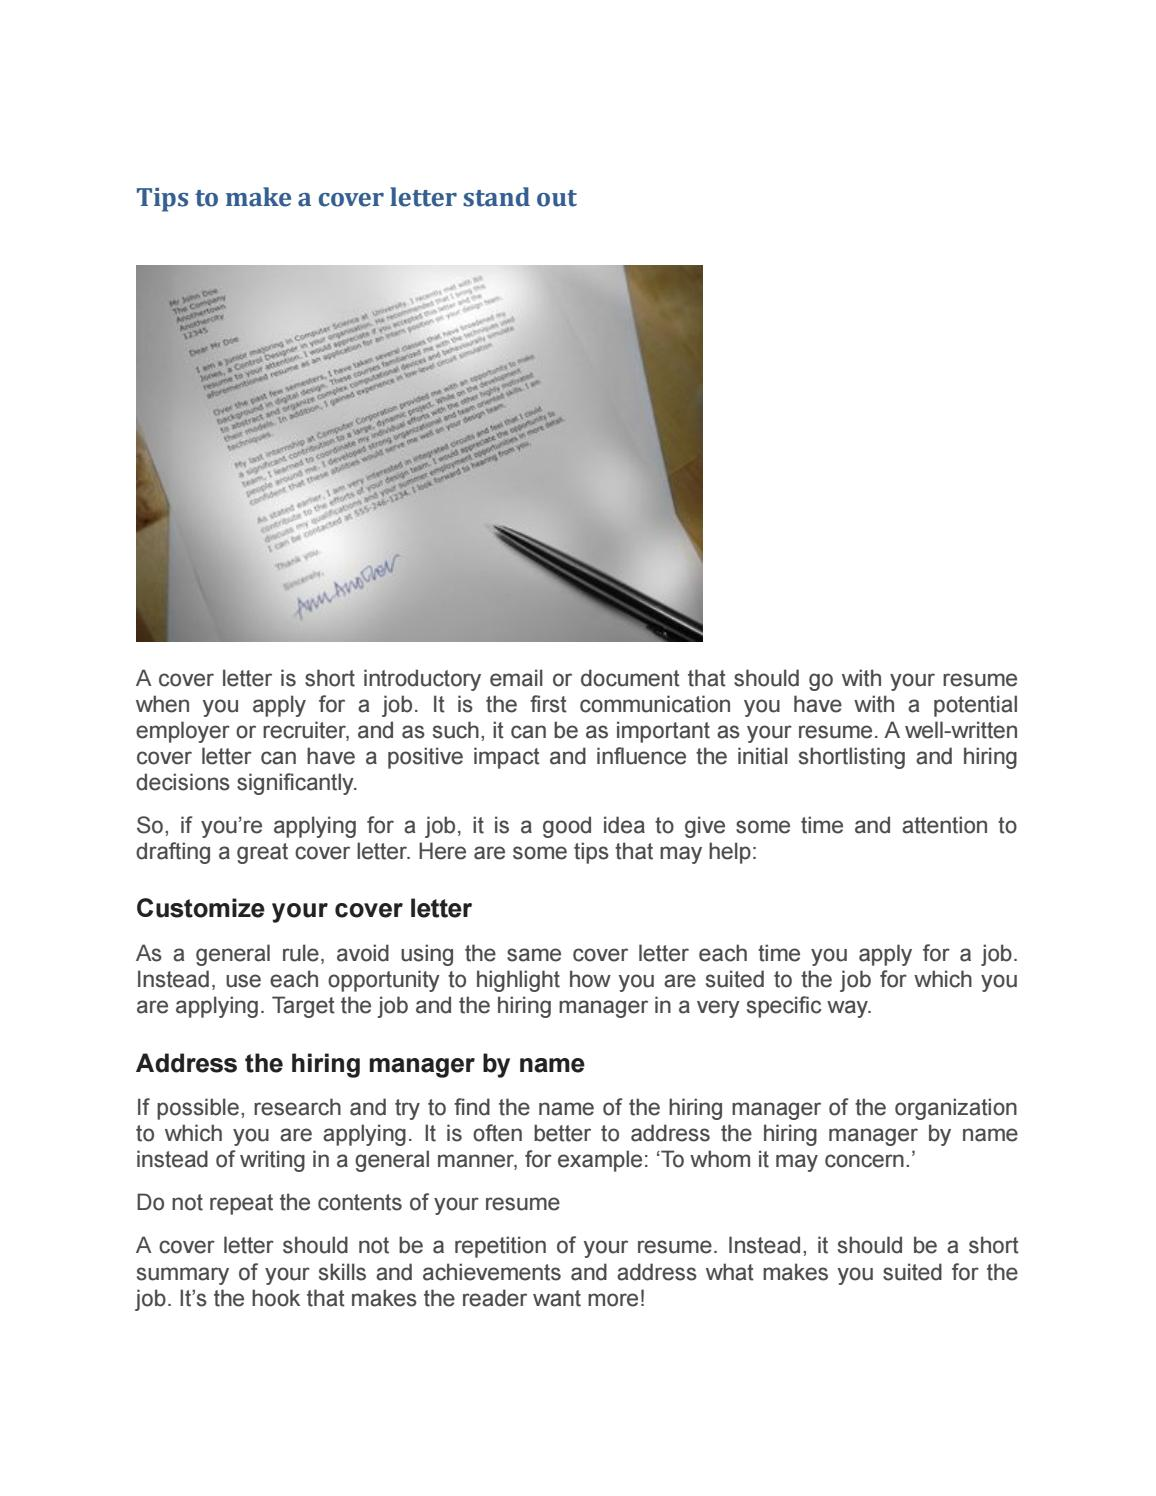 Tips To Make A Cover Letter Stand Out By Englishhelper8 Issuu